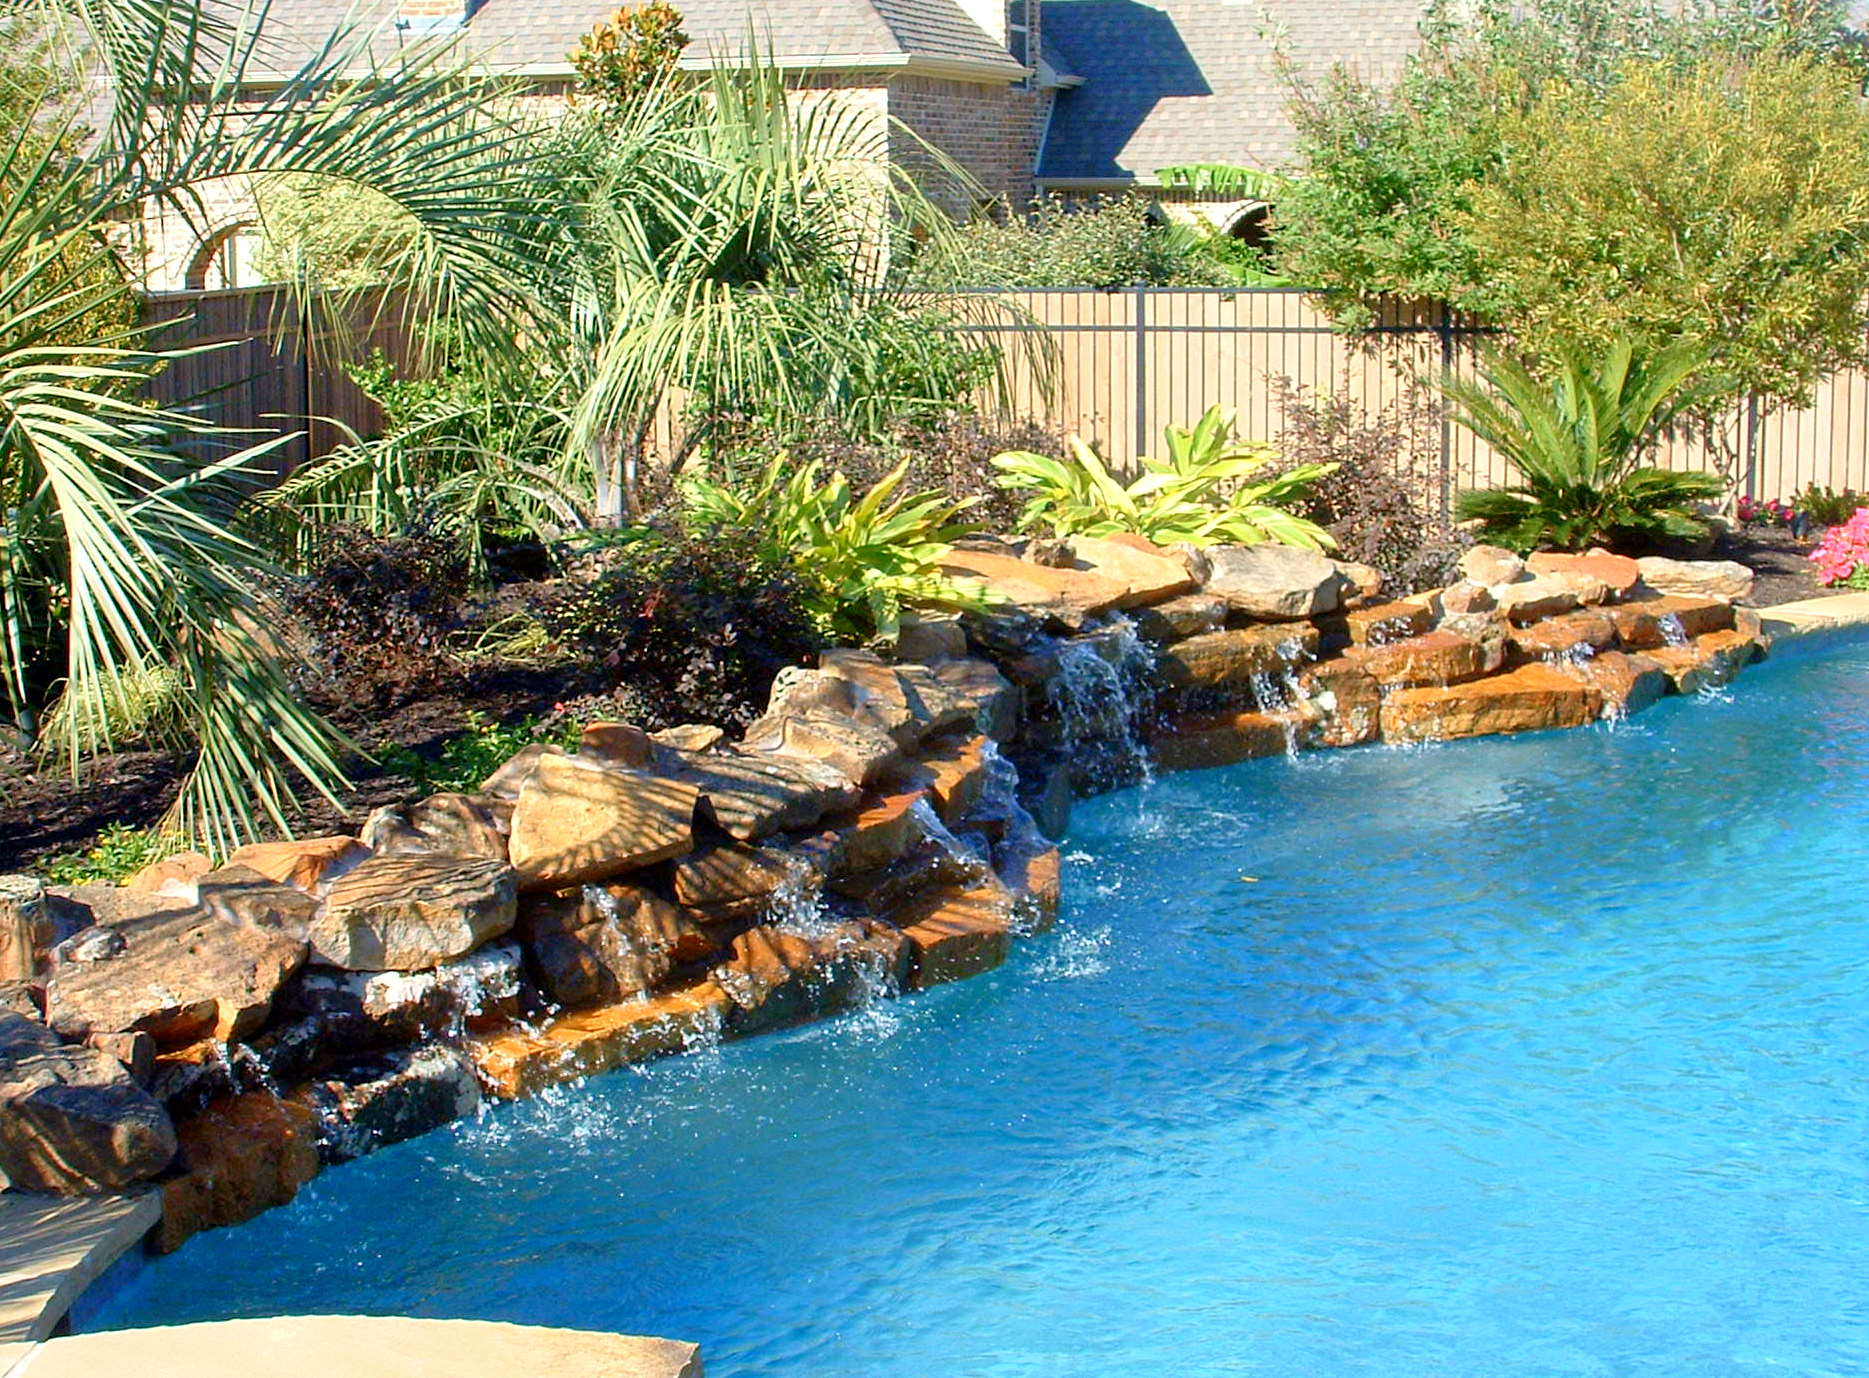 Our Water Feature Design Ideas | Miami | Plant Professionals on Rock Garden Waterfall Ideas id=60781